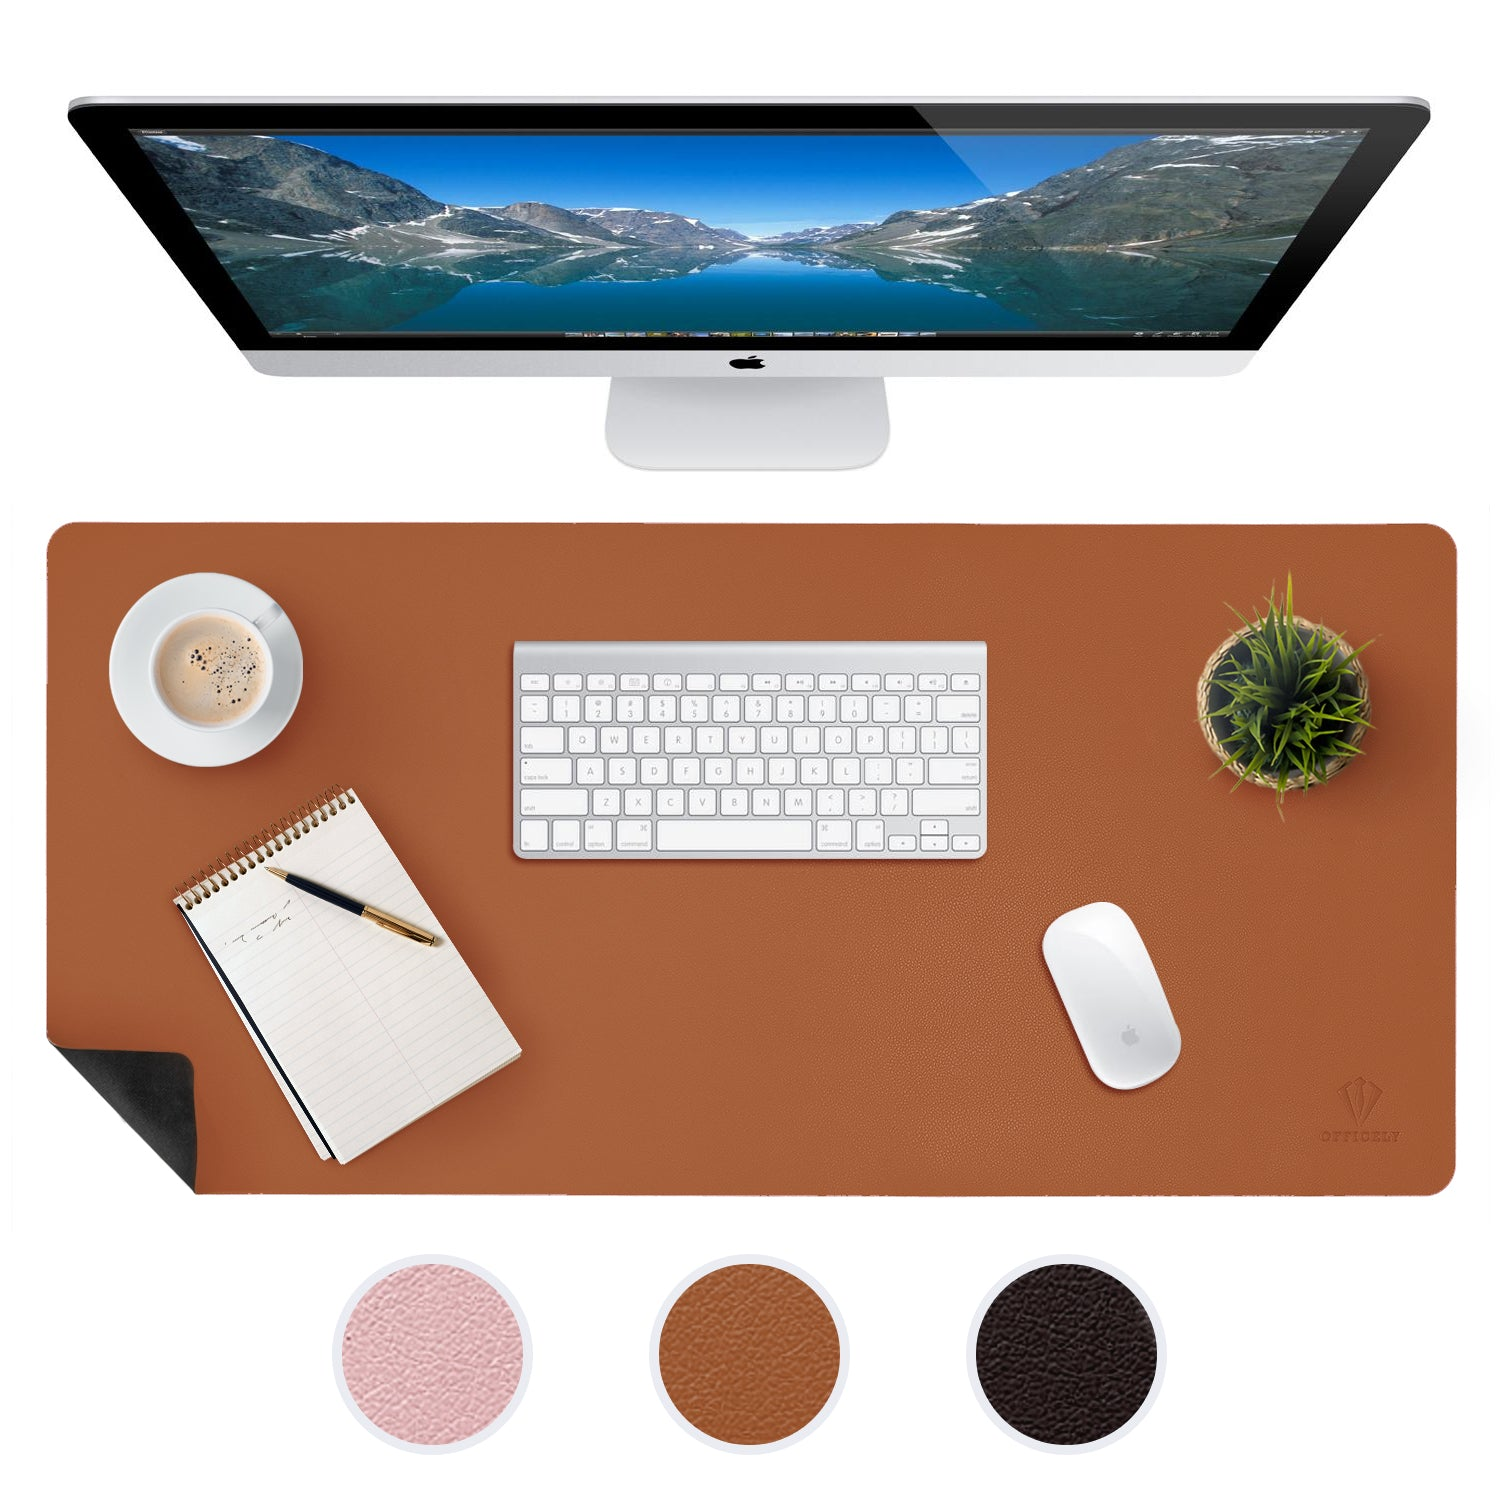 OFFICELY LEATHER DESK MAT (BROWN)